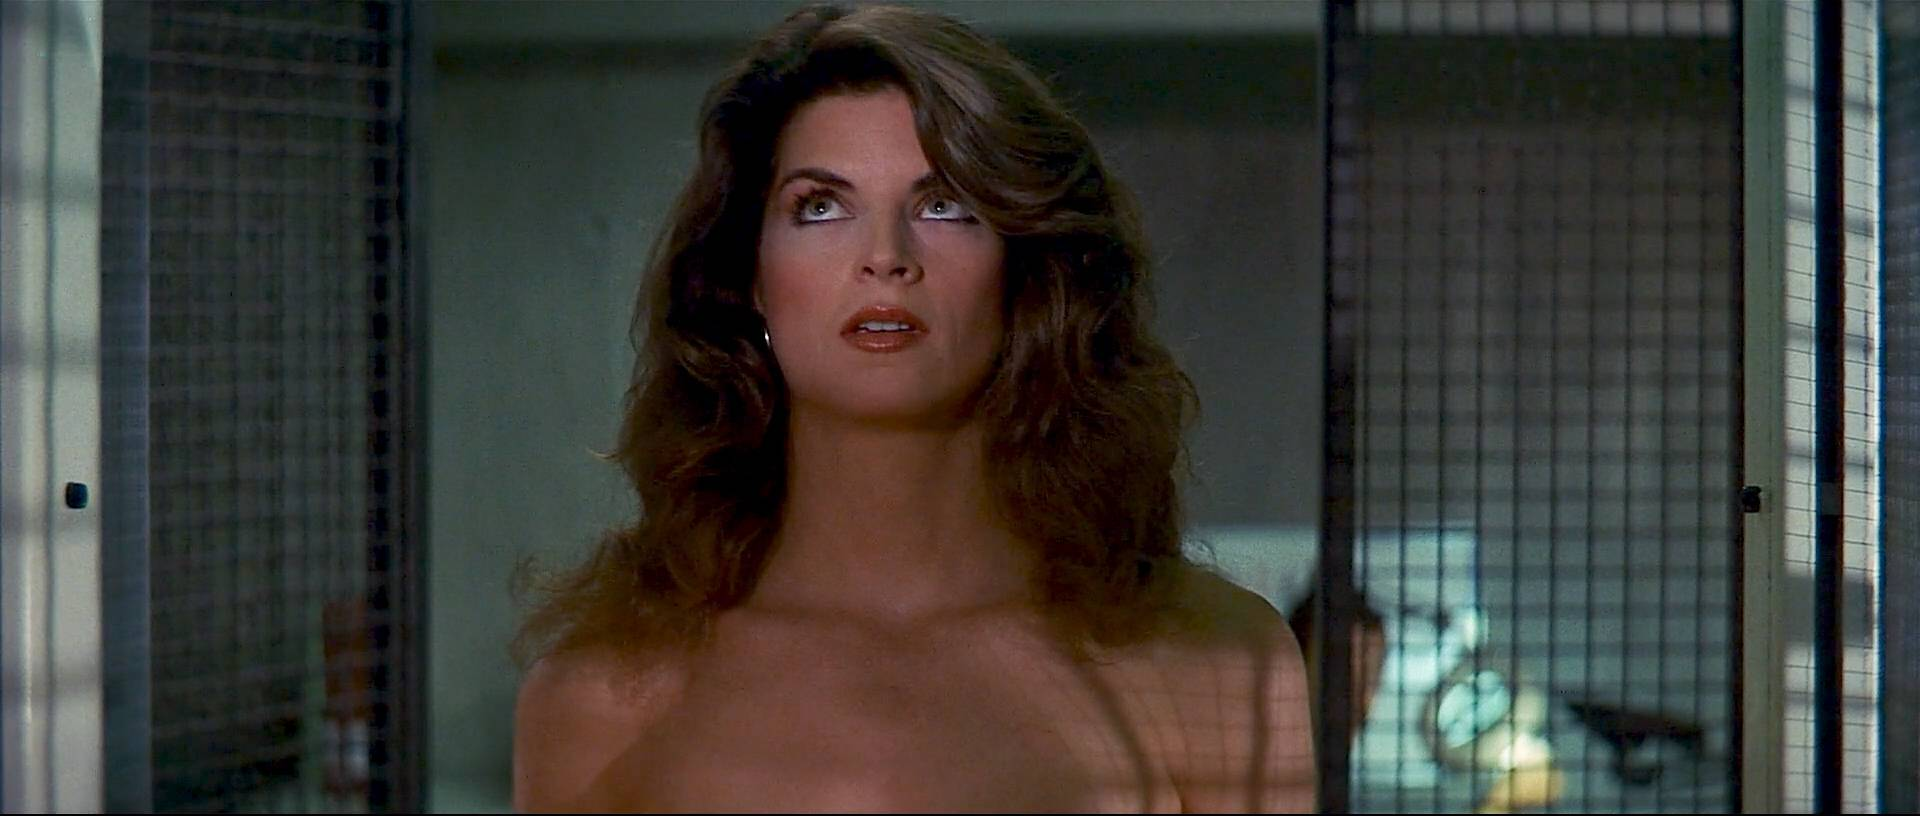 Kirstie alley nude cum on face